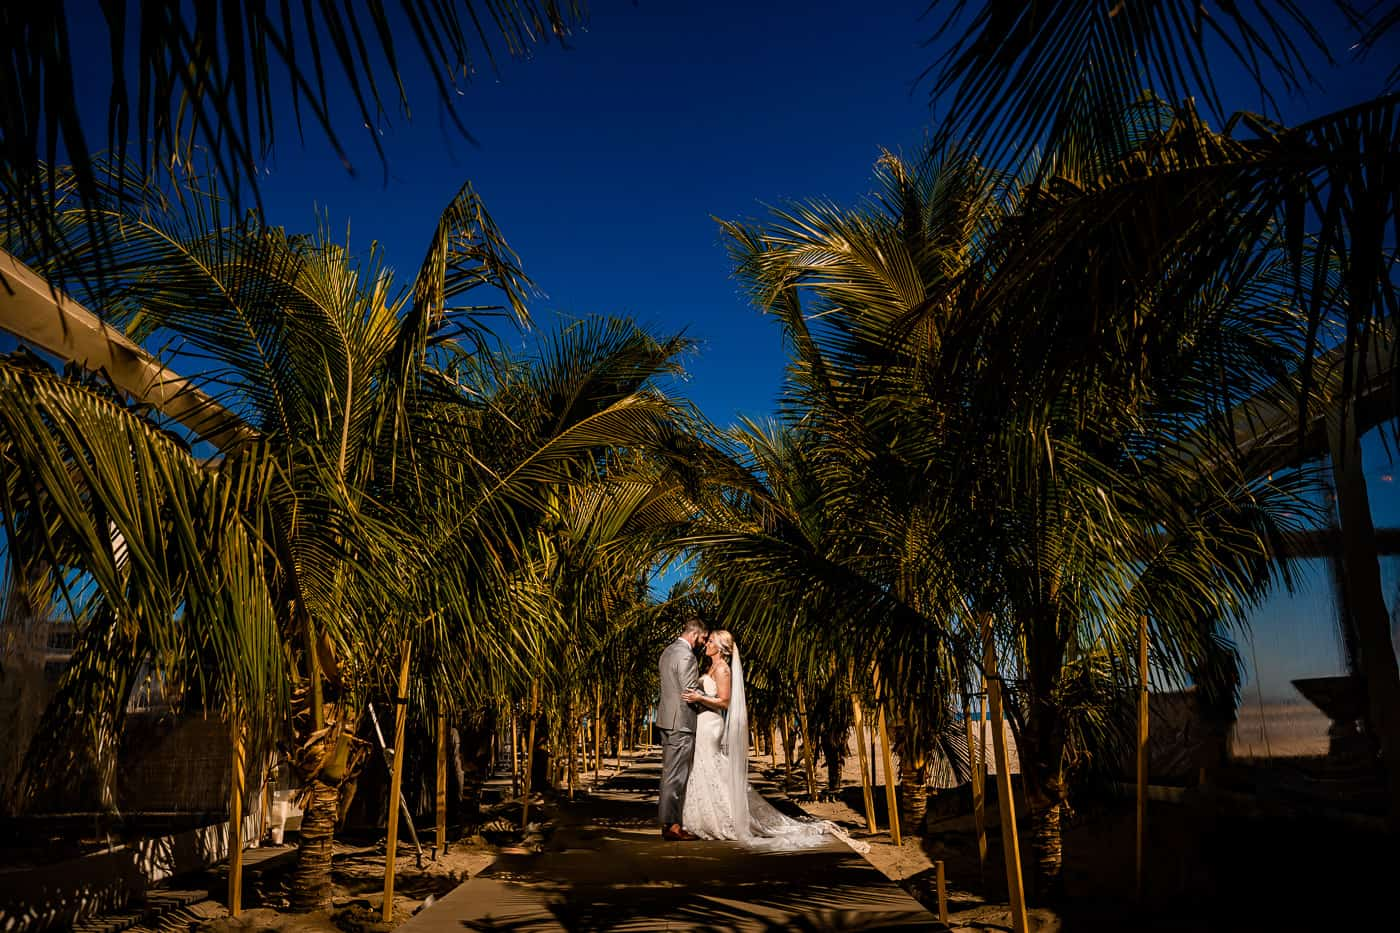 Bride and groom under palm trees at Icona Diamond Beach in Wildwood crest nj